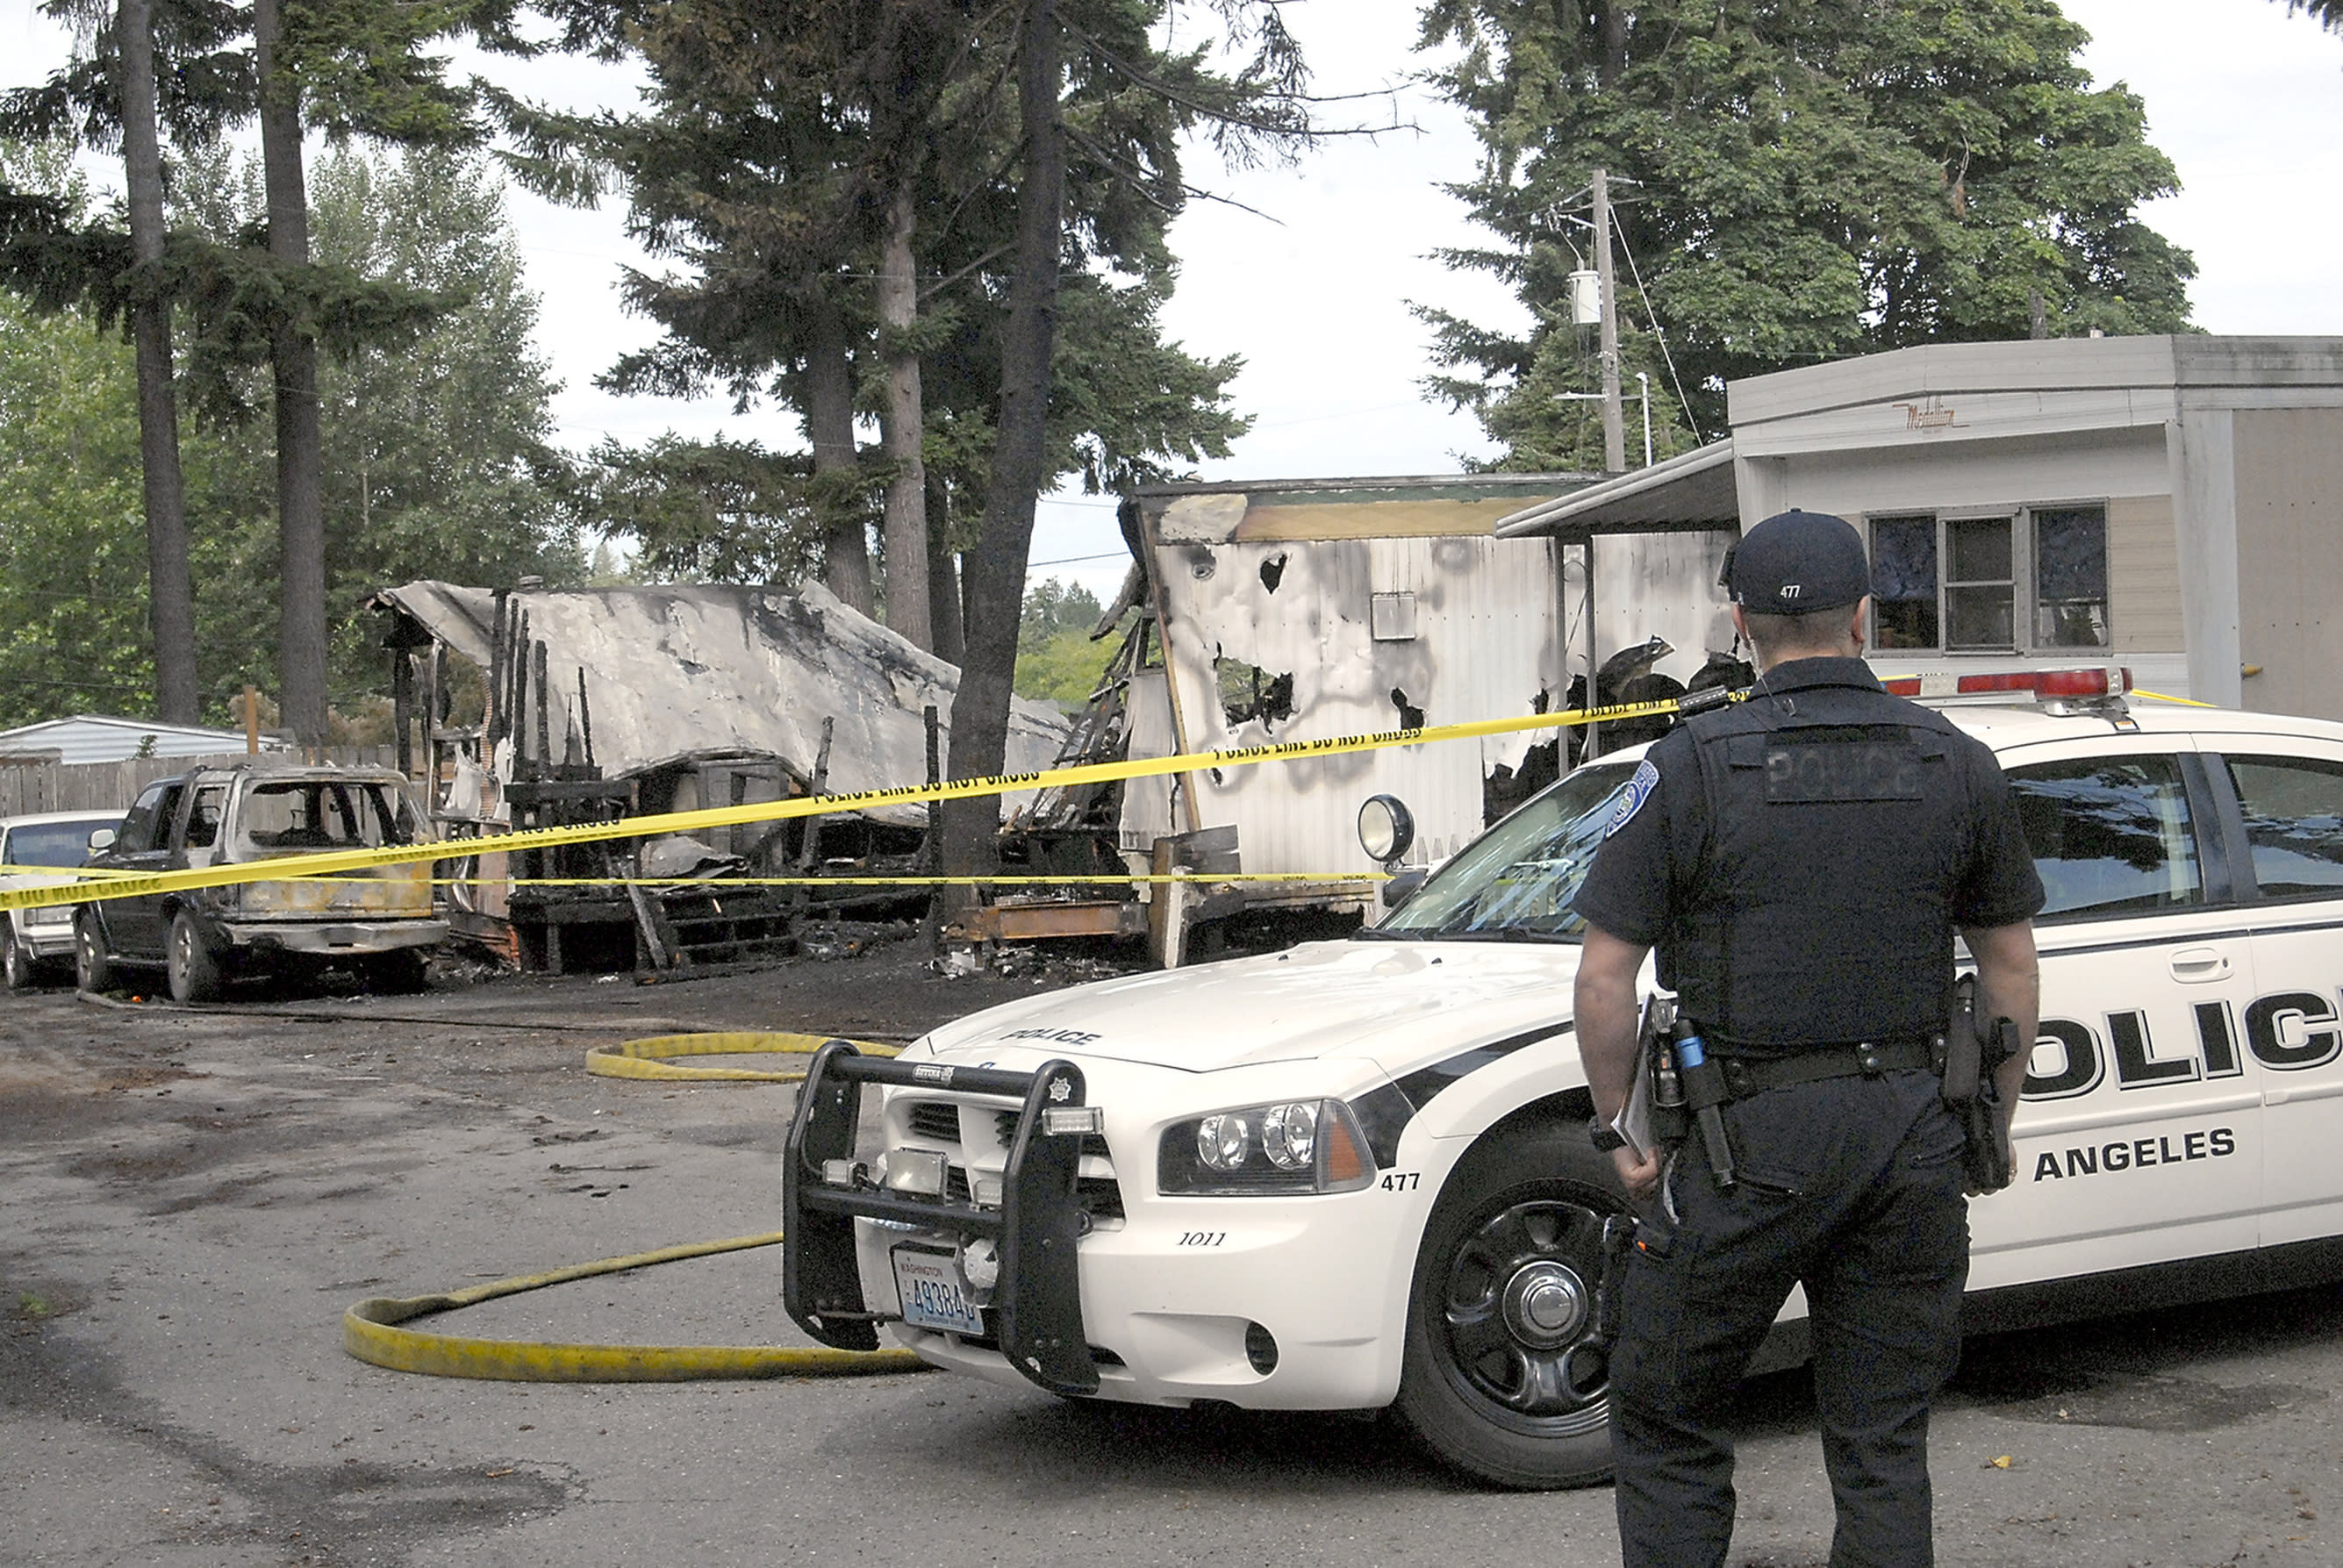 Woman, 3 children missing in deadly mobile home fire on church on fire, nursing home fire, grill fire, trailer fire, motor home fire, roseville home fire, forest fire, people on fire, dwelling fire, mobile fire rescue department, motorcycle fire, commercial fire, flat fire, recreational fire, mobile fire rescue training, tipi fire, apartment fire, maine home fire, restaurant fire,